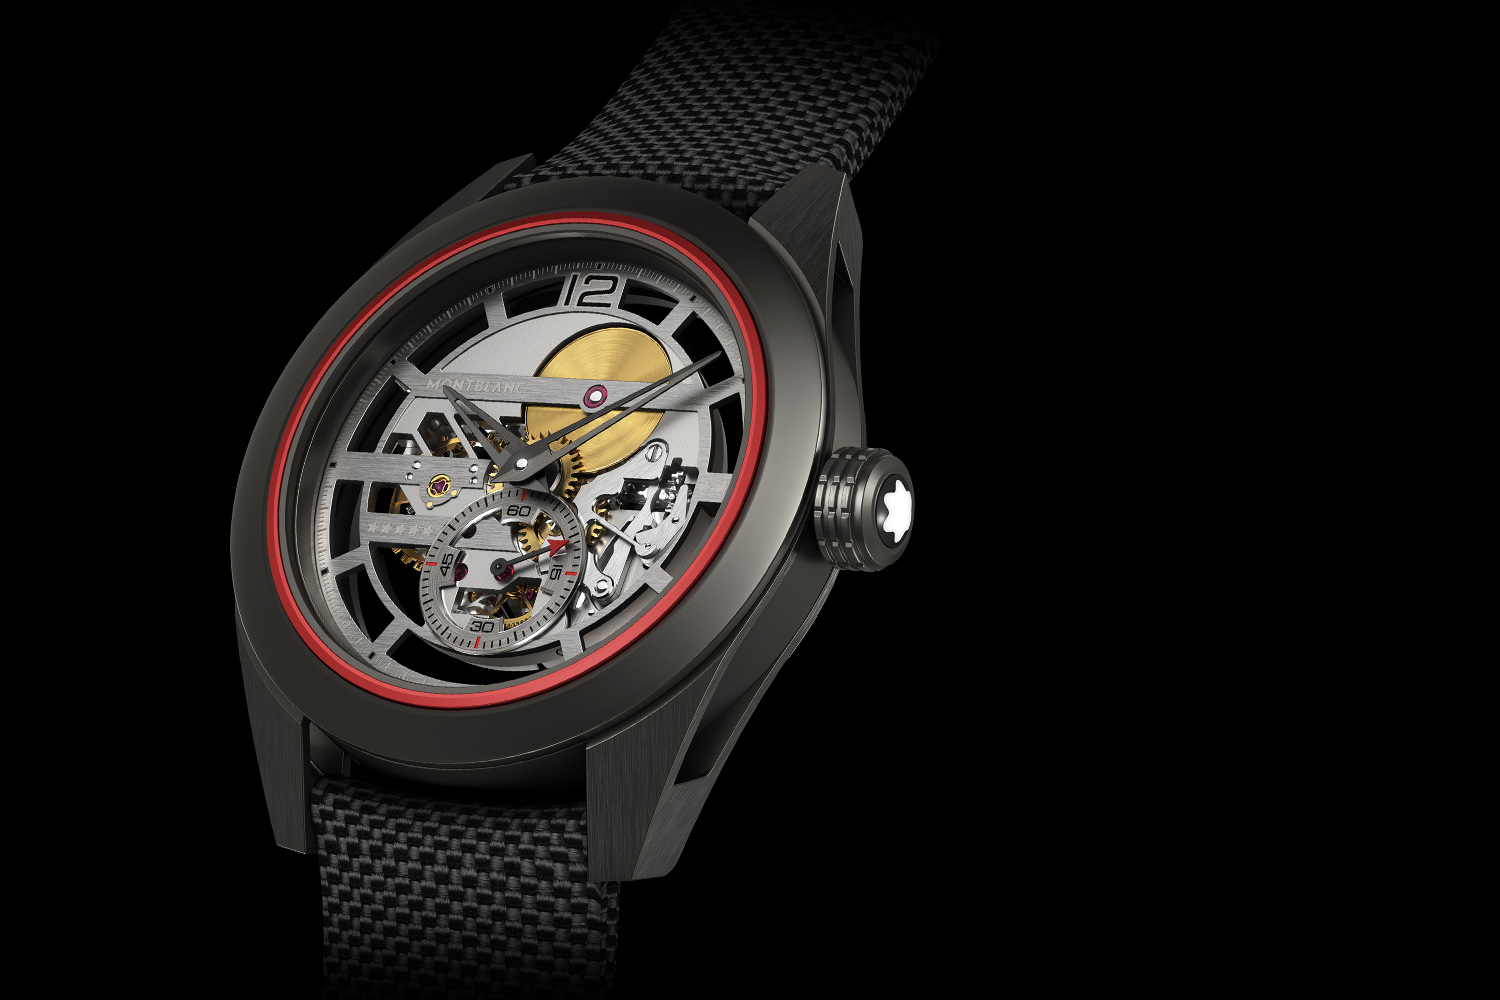 f4b398bad15 Introducing - Montblanc TimeWalker Pythagore Ultra-Light Concept ...